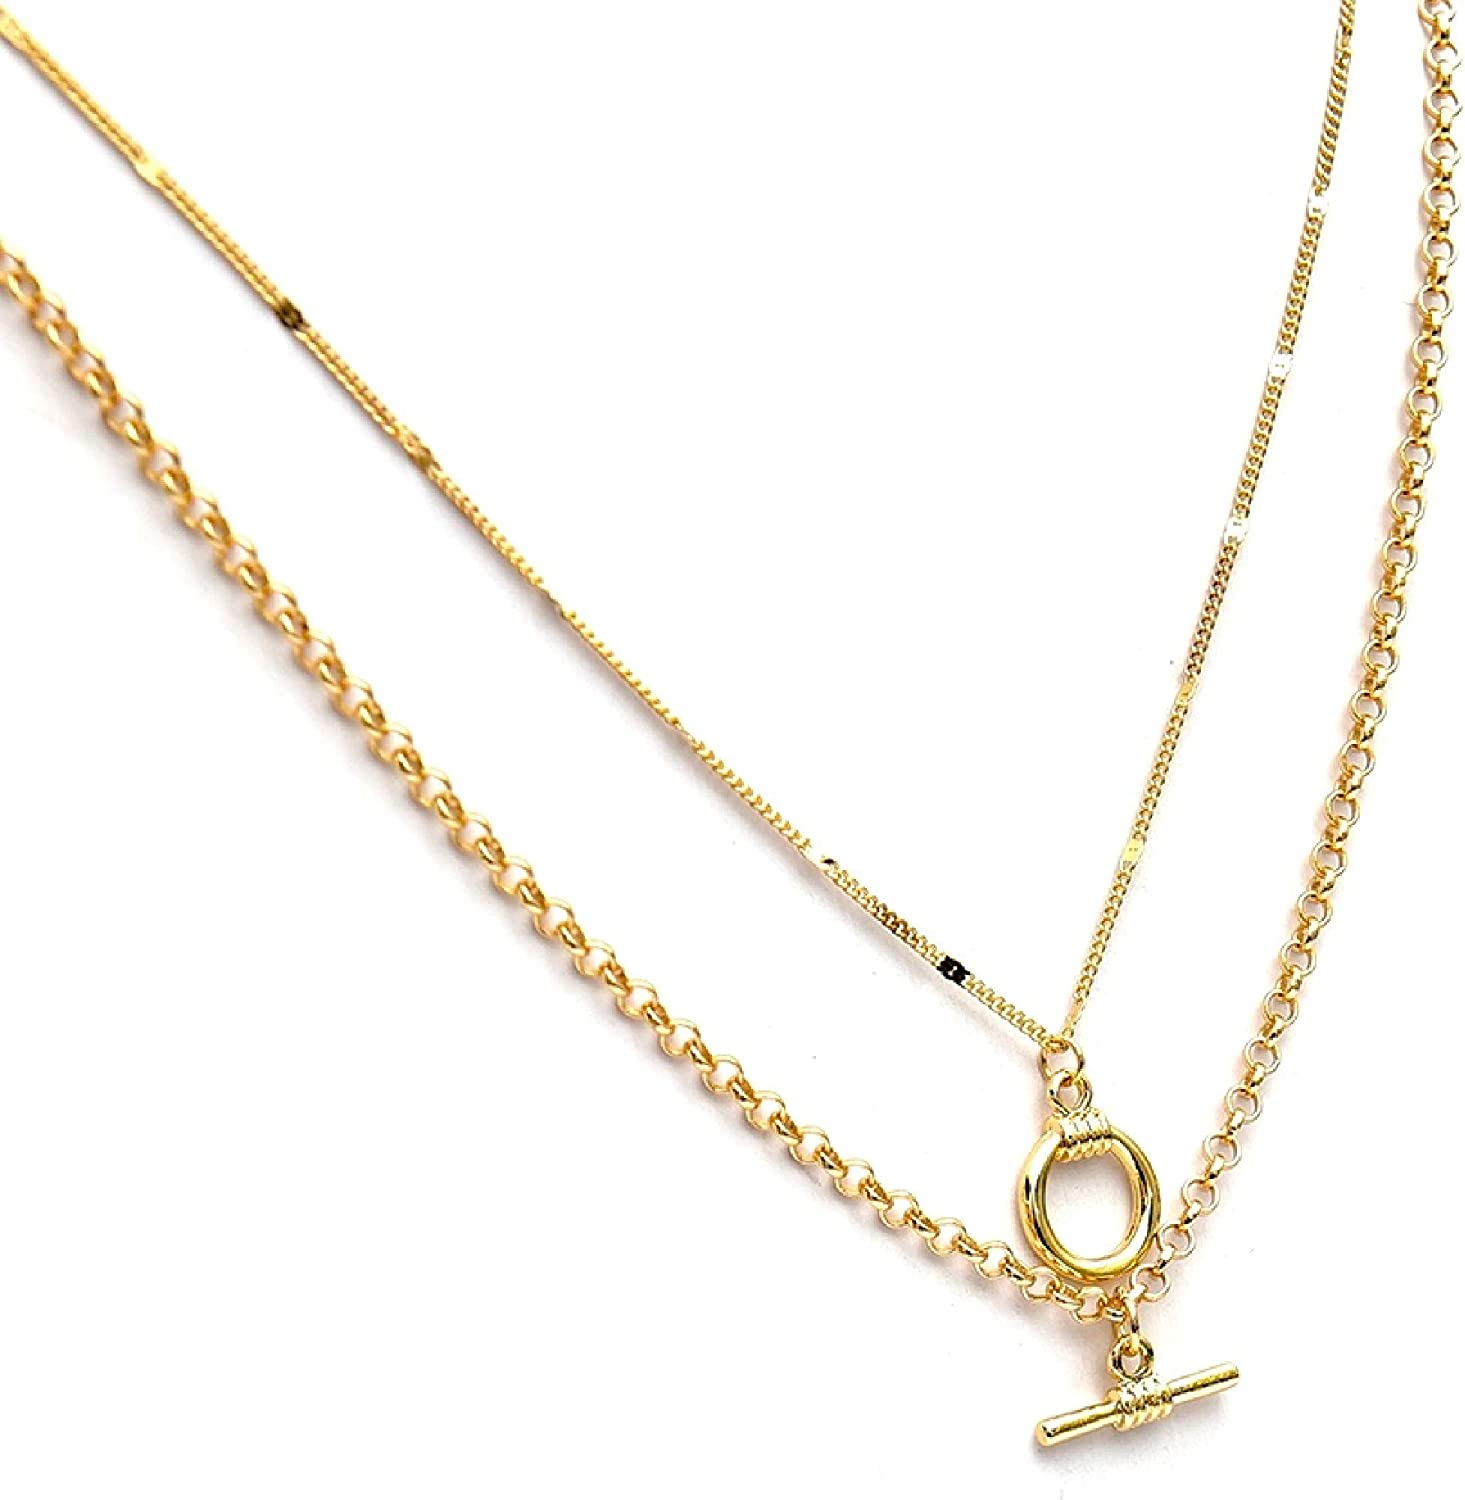 Allison Rose Atelier- Dainty Art Deco Necklace Set - 16k Gold Plated Preppy Chain Necklaces with T-Bar and Circle Charms - 2 Tier Layered Necklace for Women